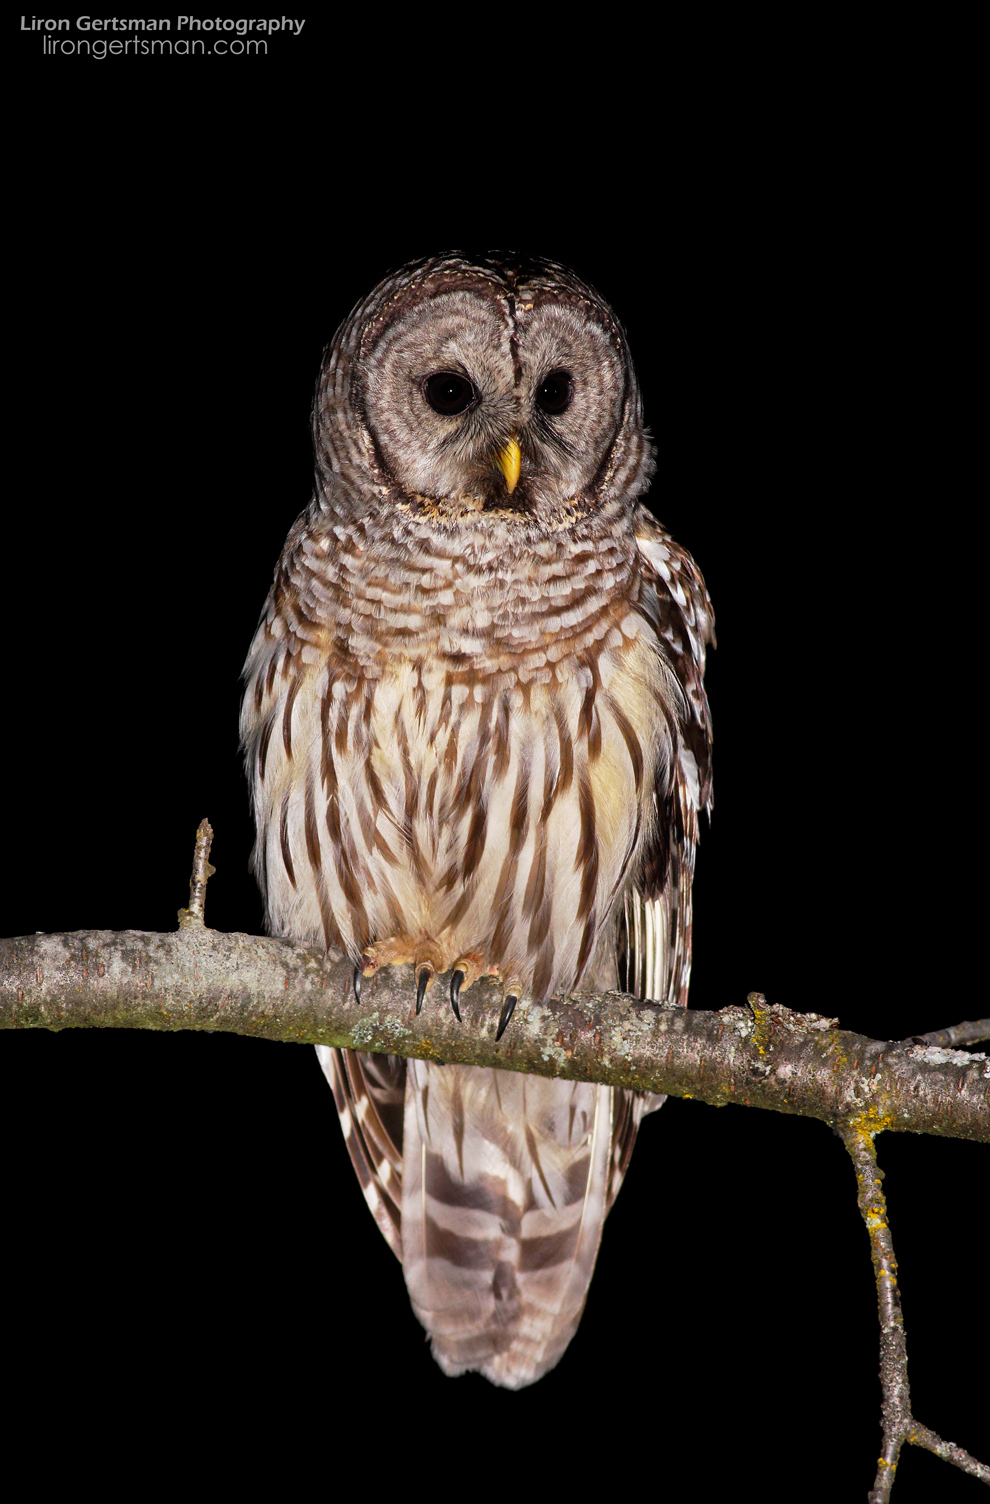 Barred-Owl-02-web.jpg